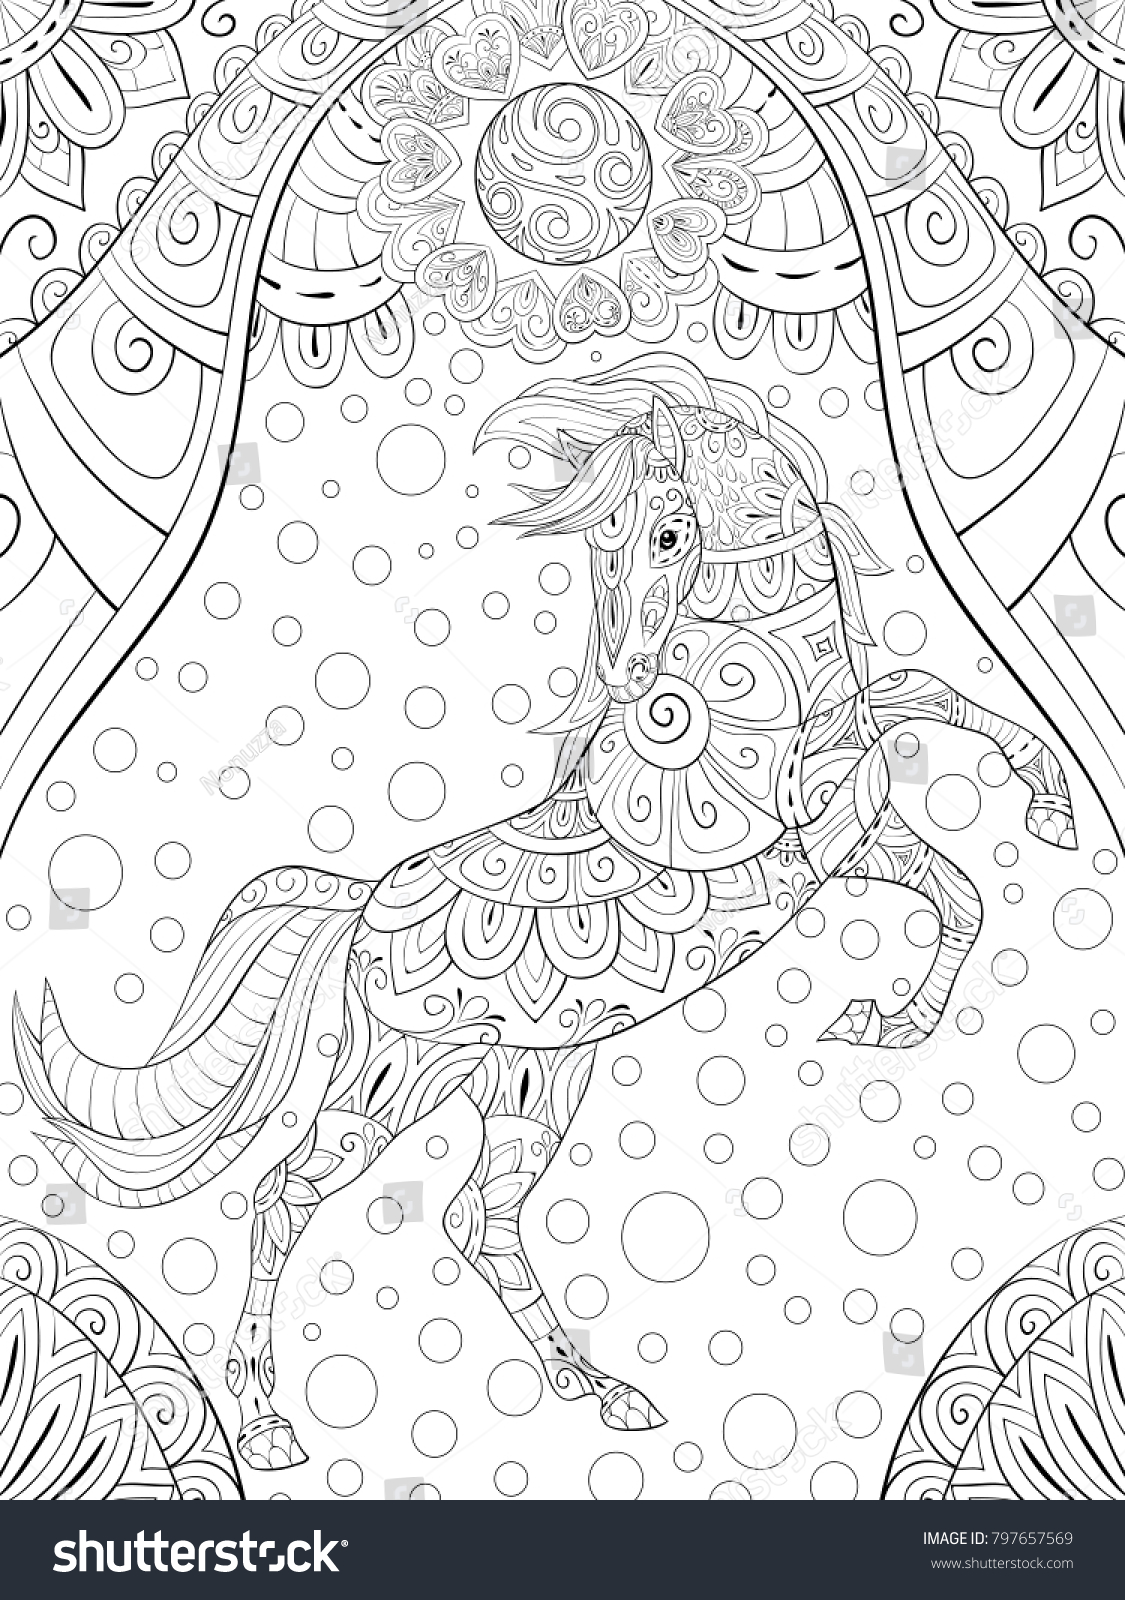 Adult Coloring Bookpage A Cute Horse On Abstract Backgrounda Valentines Day